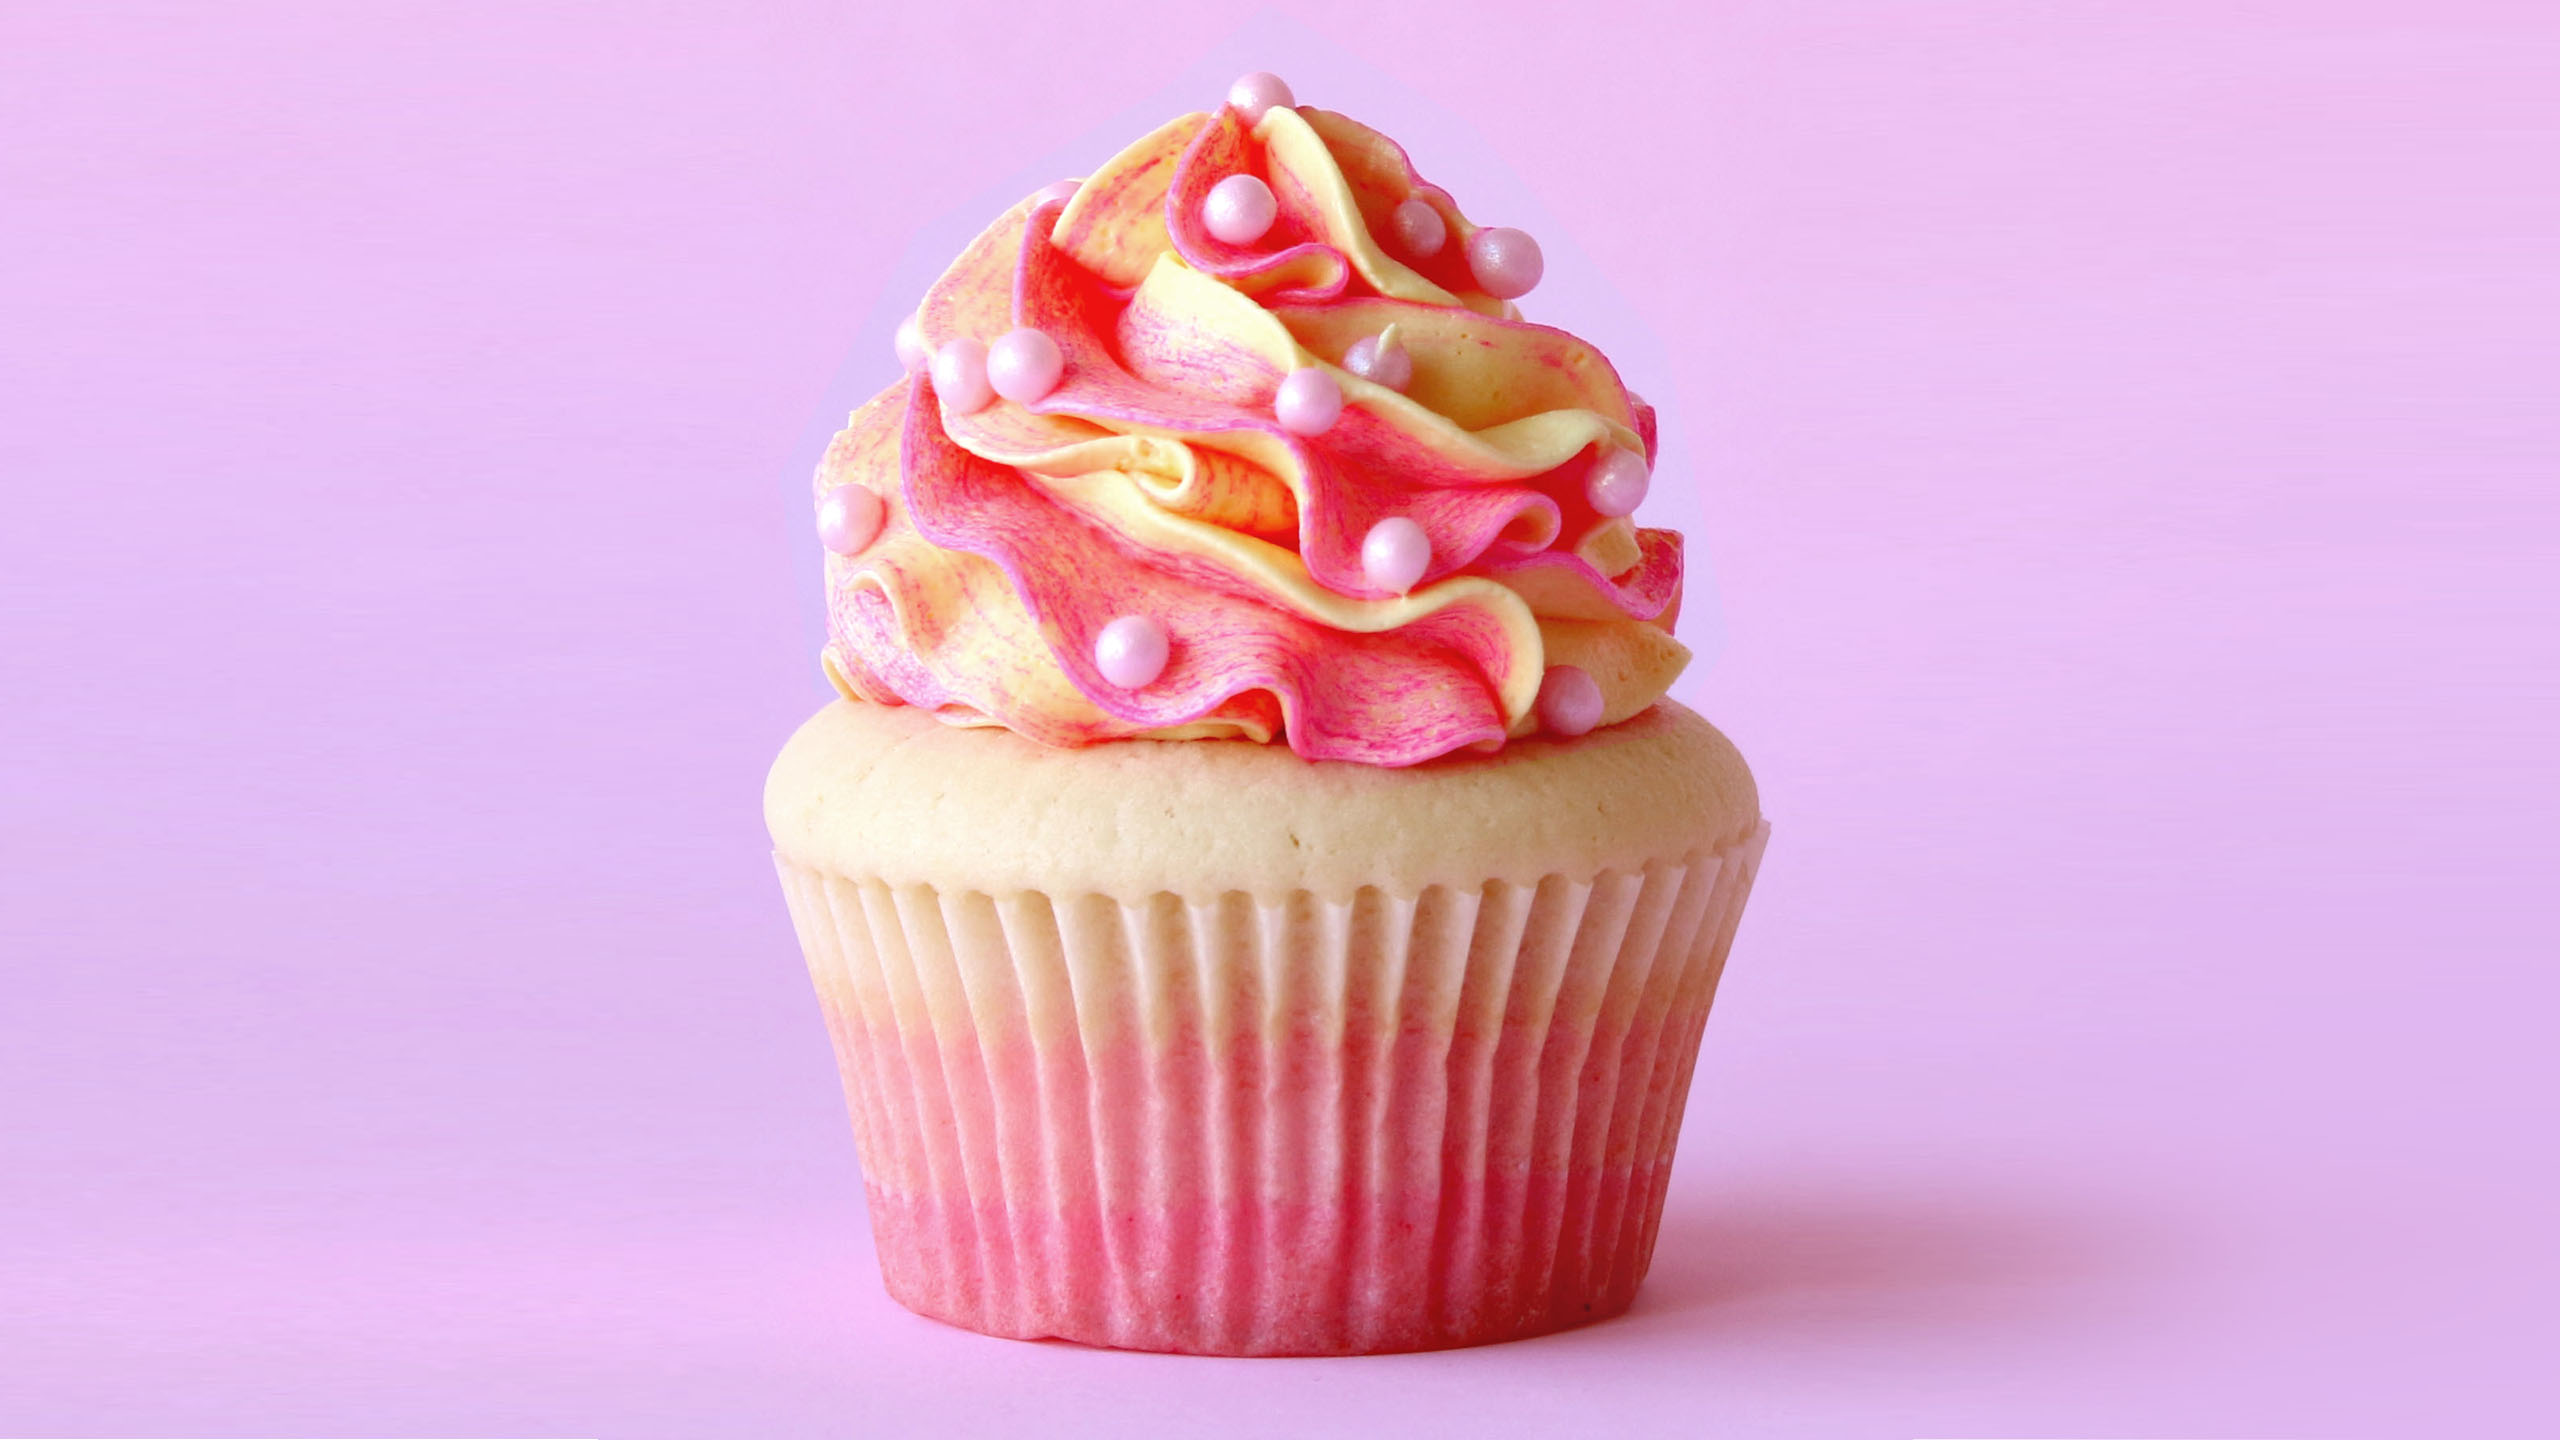 Cupcake Picture 2560x1440